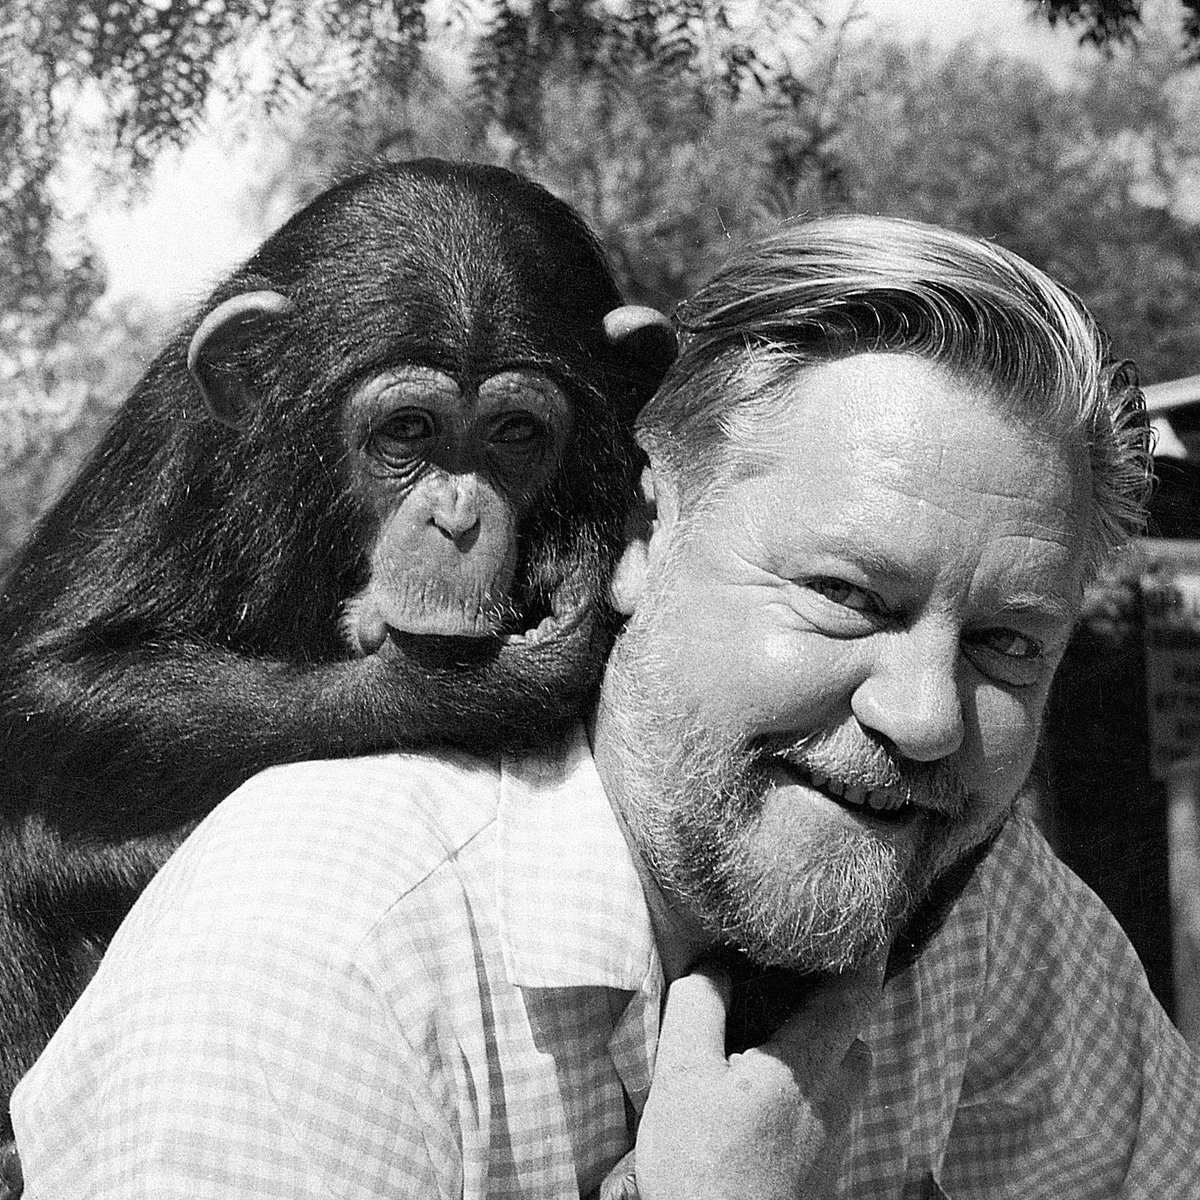 Gerald Durrell, 90th Birthday Tribute – remembering a truly inspiring pioneer in conservation http://t.co/lx4oCxW92x http://t.co/nbILOgaT0P